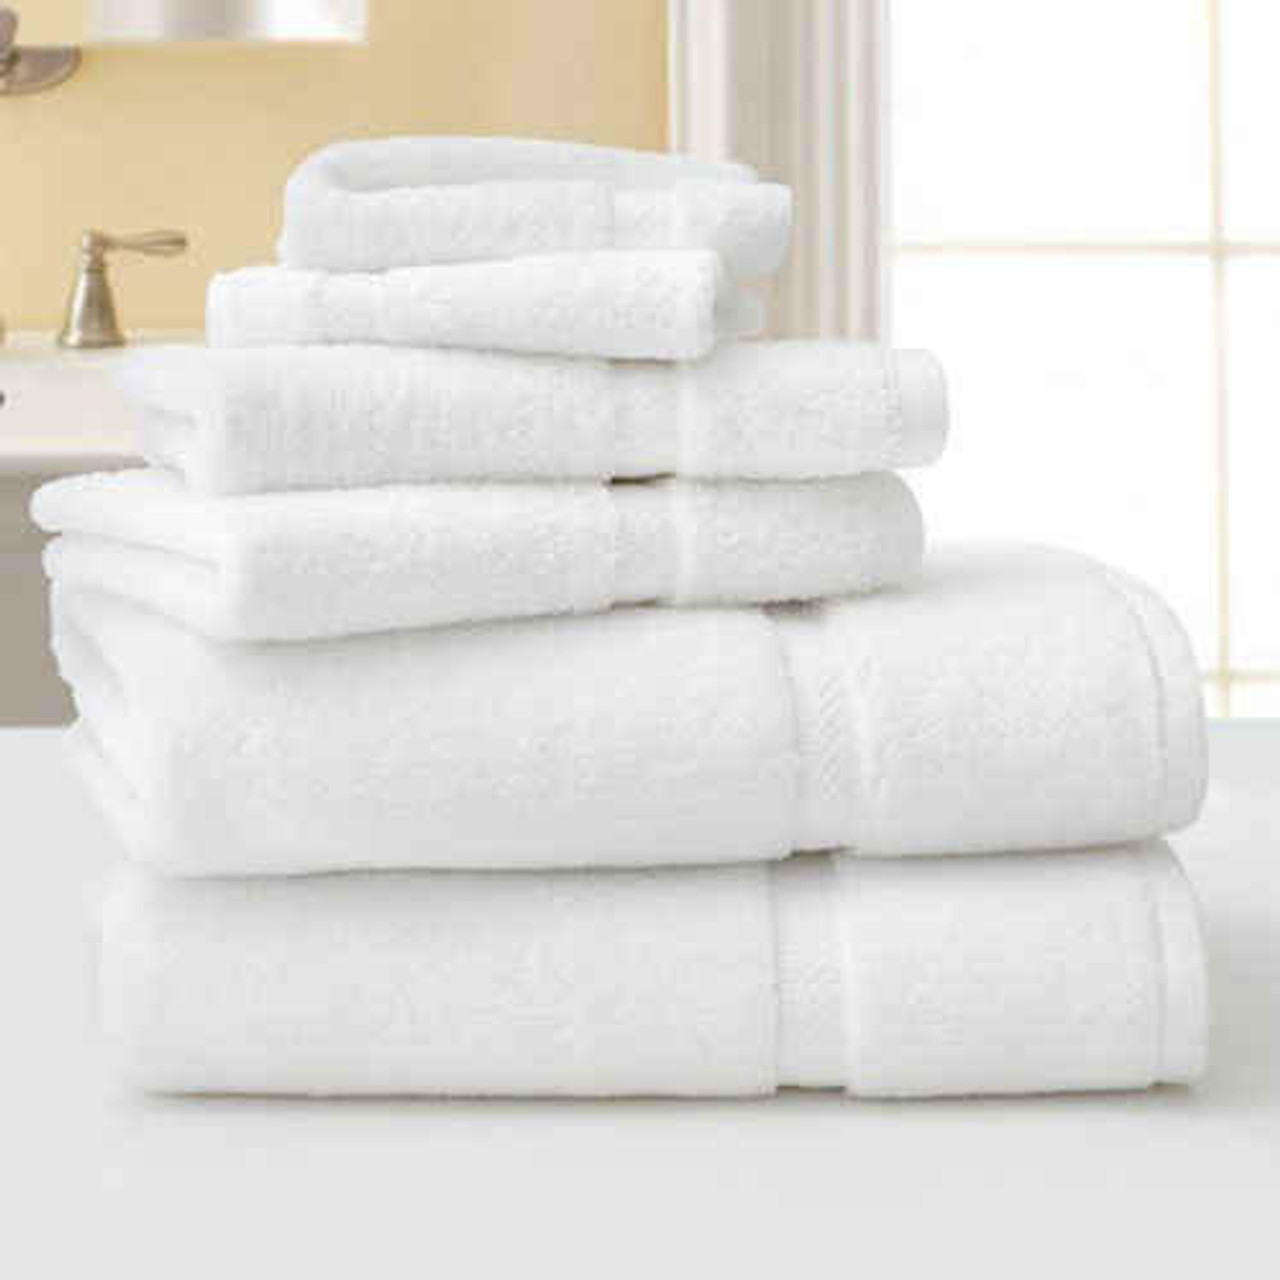 Westpoint Five Star Hotel Towels Bath Hand Towel Sets